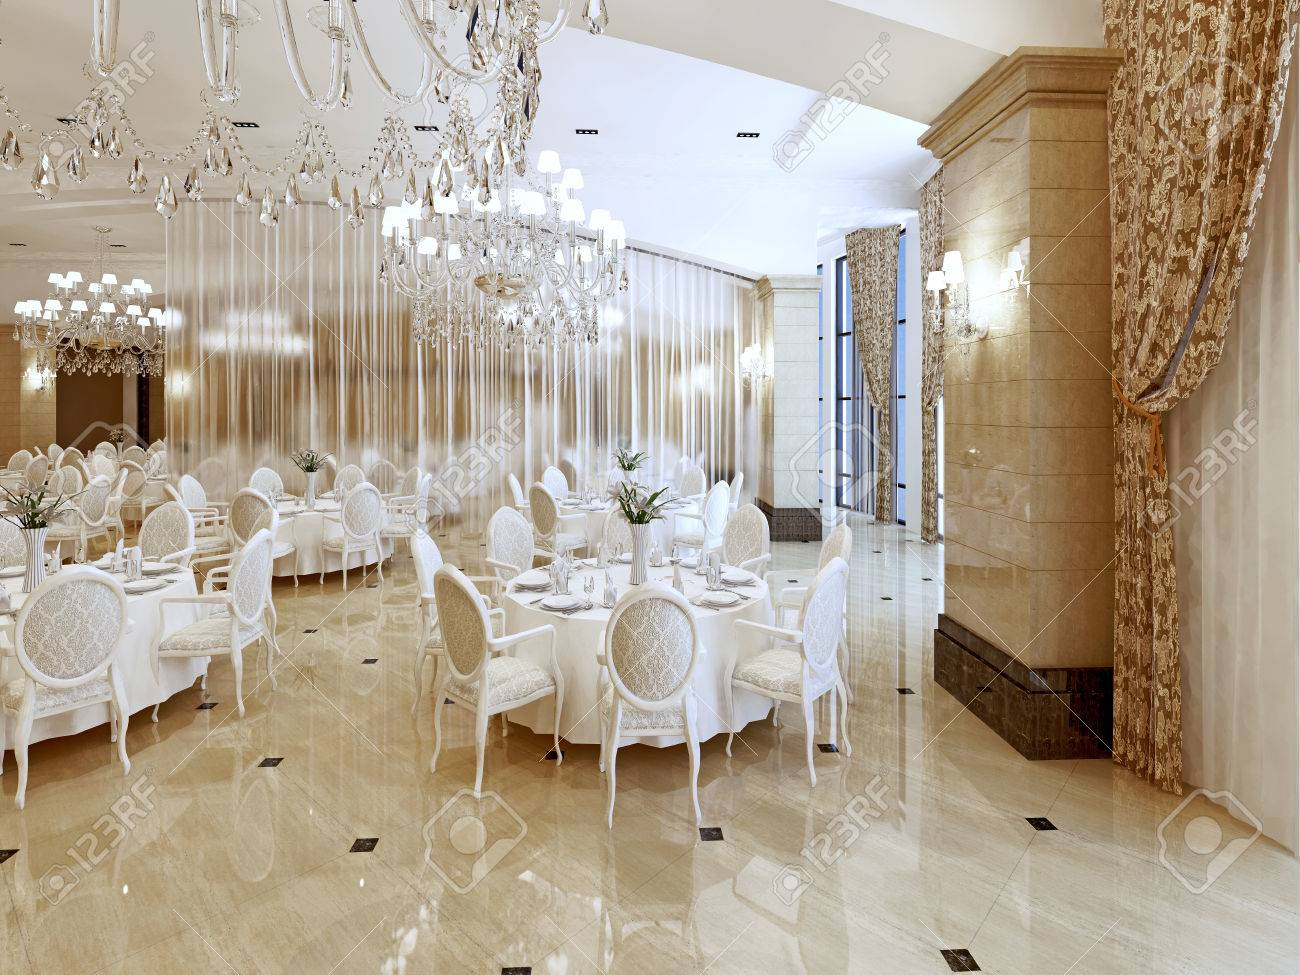 A Grand Restaurant And A Ballroom In A Luxury Hotel The Interior Stock Photo Picture And Royalty Free Image Image 66021301